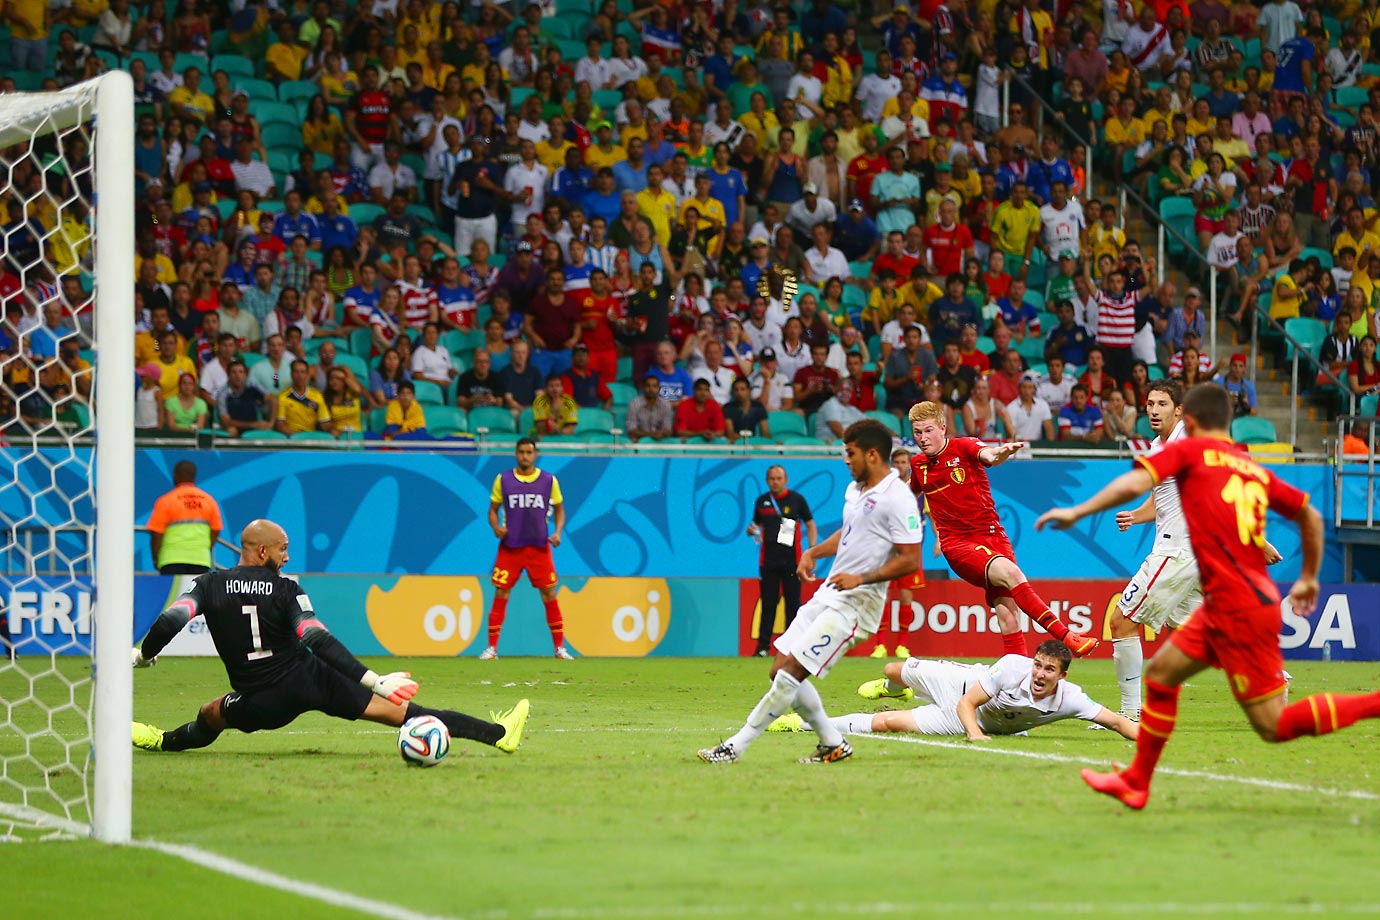 Belgian midfielder Kevin de Bruyne (#7) scores for his country in the first half of extra time, breaking the 0-0 deadlock.